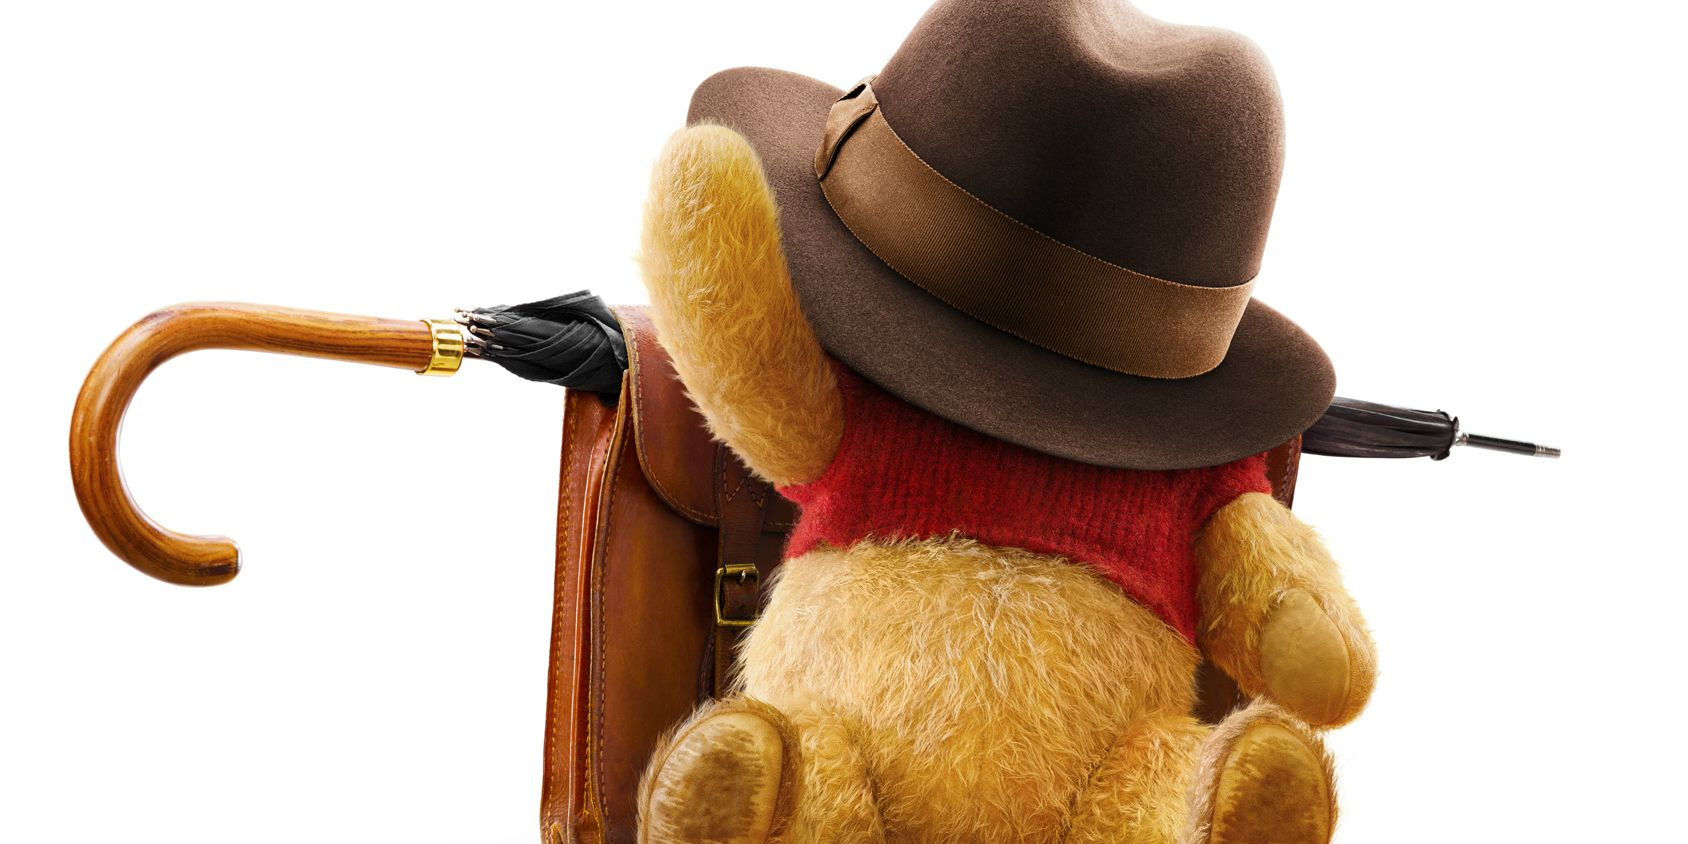 https://static0.srcdn.com/wp-content/uploads/2018/03/Disney-Christopher-Robin-Movie-Poster-Cropped.jpg